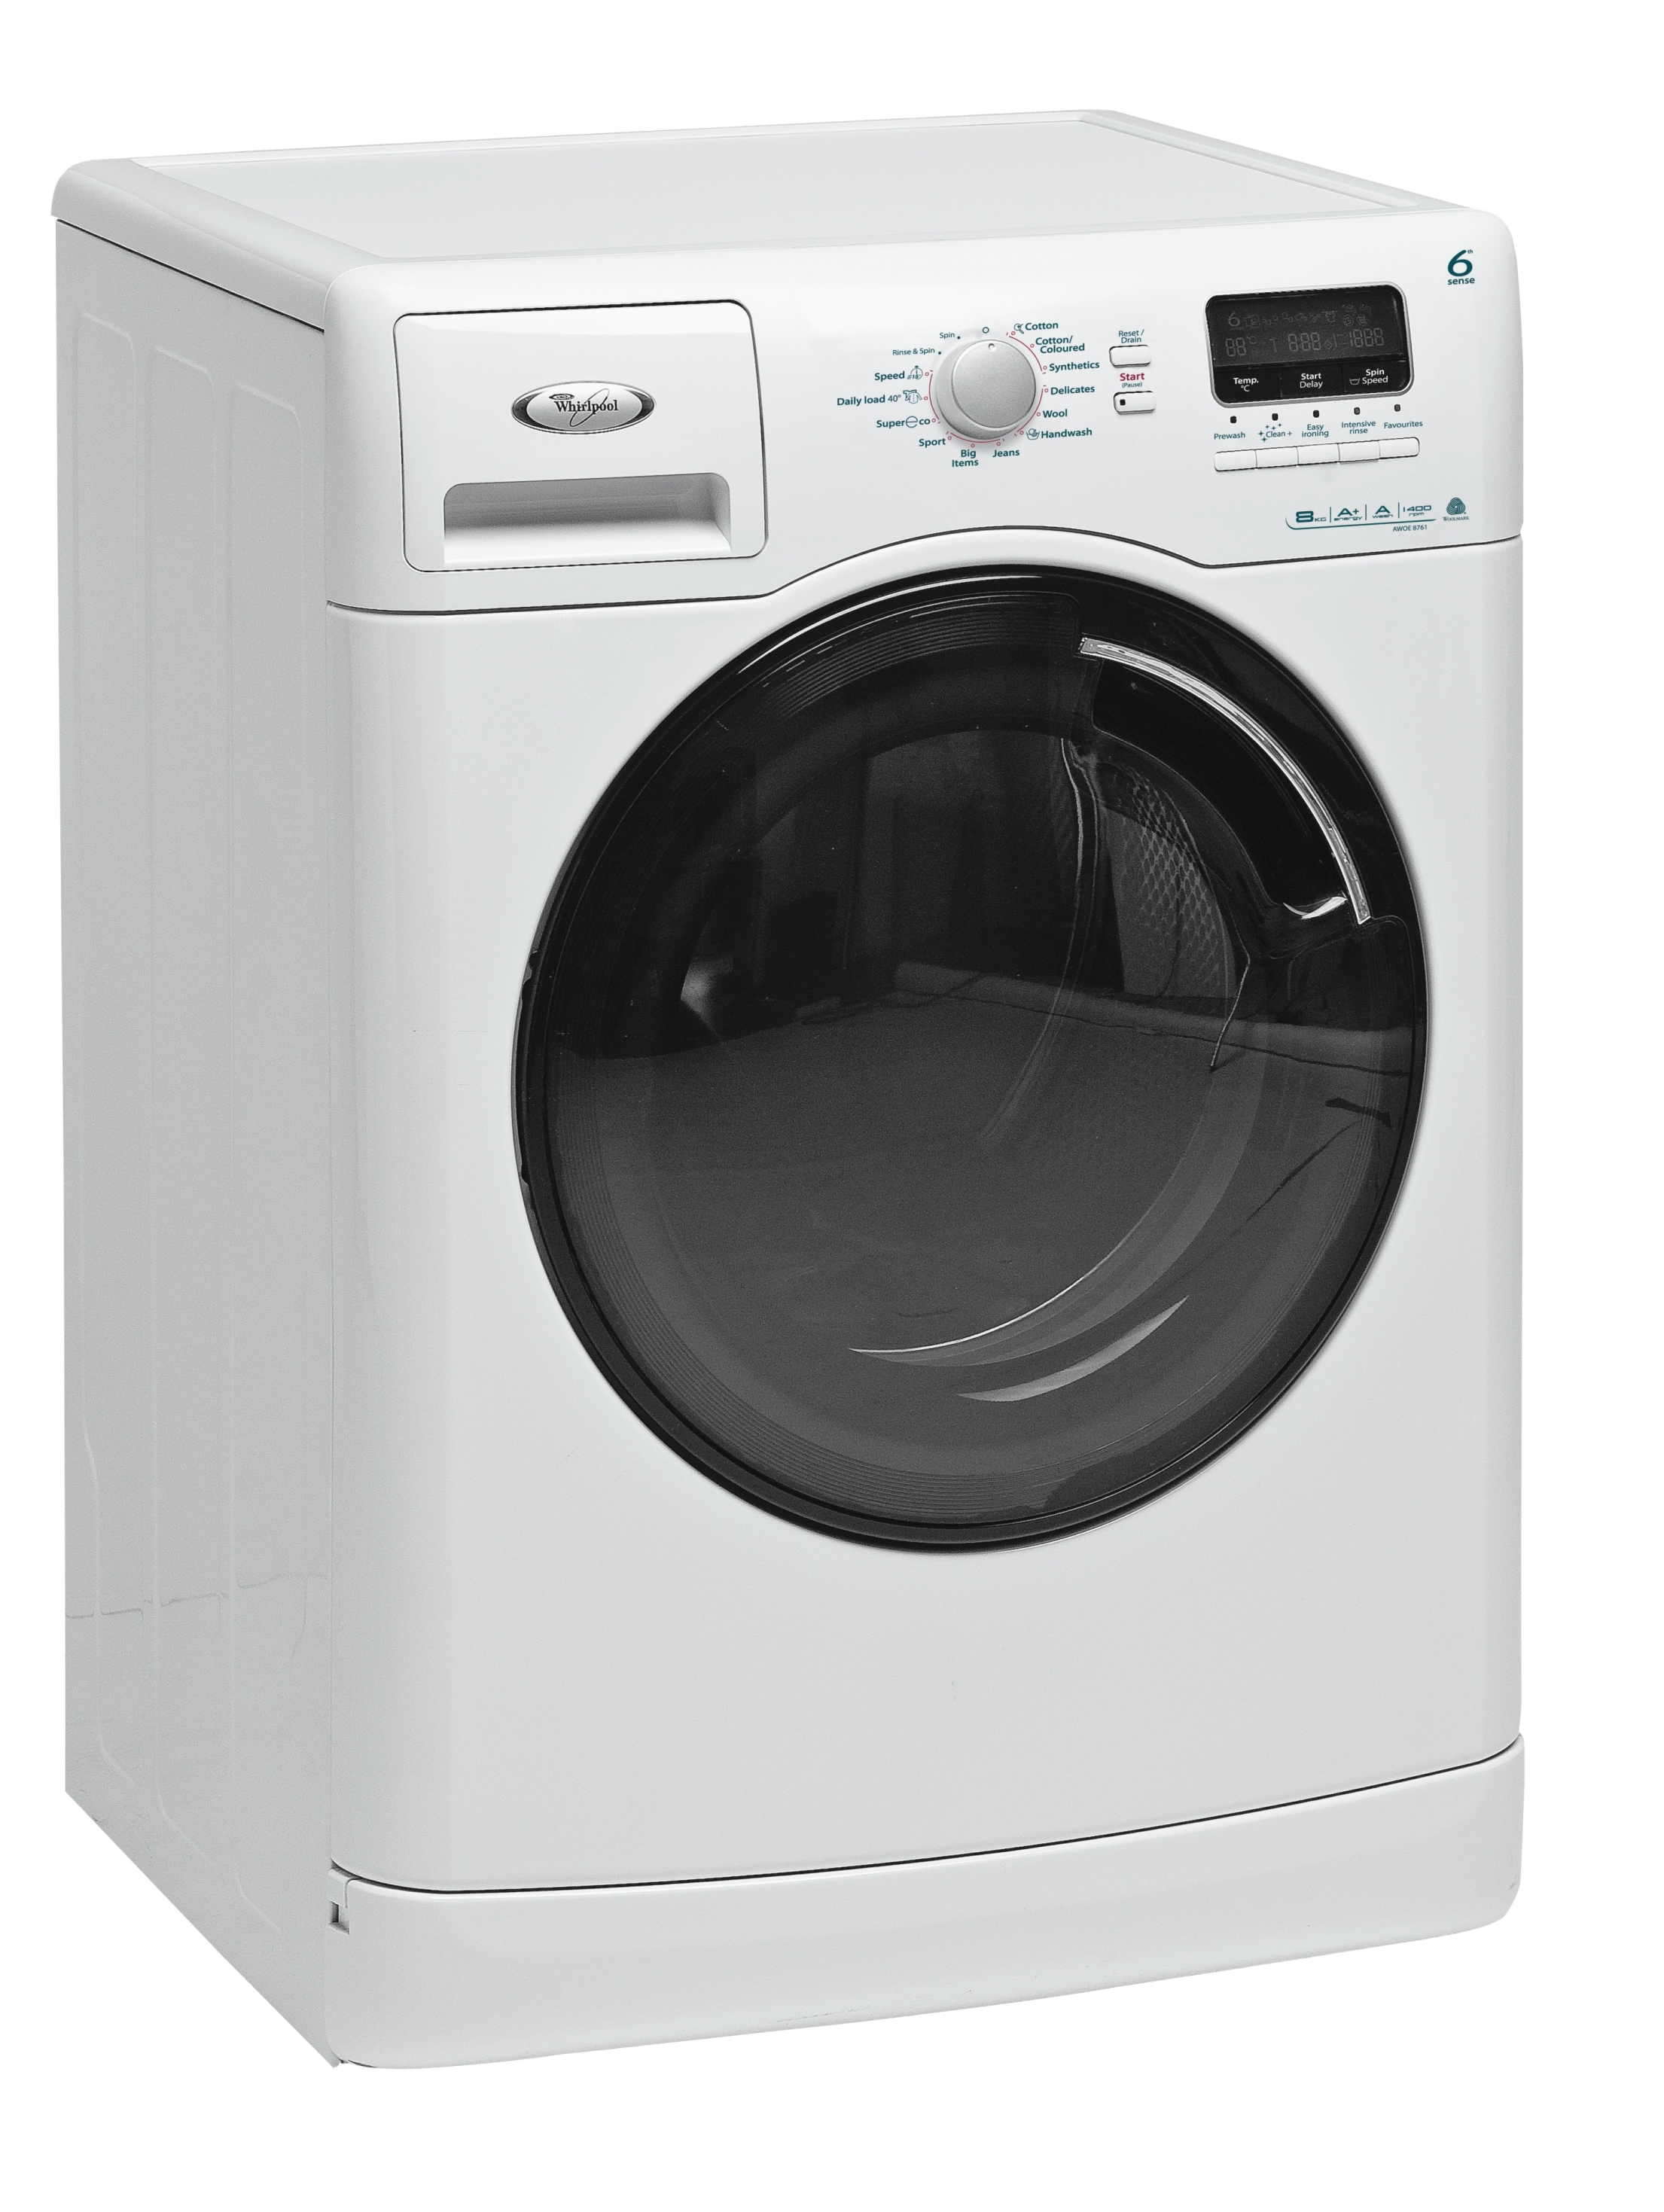 whirlpool awoe 8761 washing machine 6th sense extra large. Black Bedroom Furniture Sets. Home Design Ideas